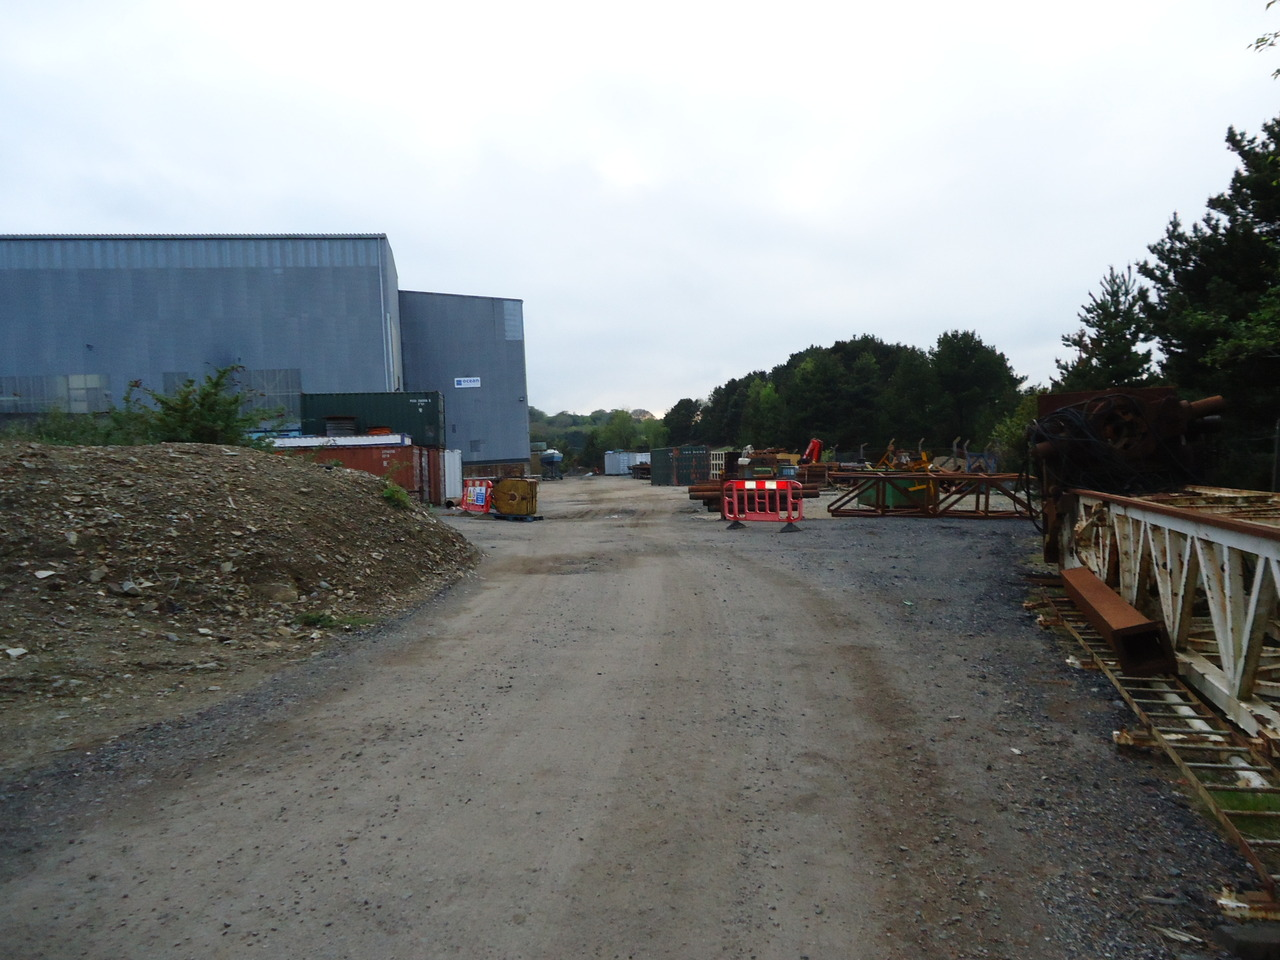 800 sq m Building with Adjacent 0.5 Acre Yard near Redruth ...